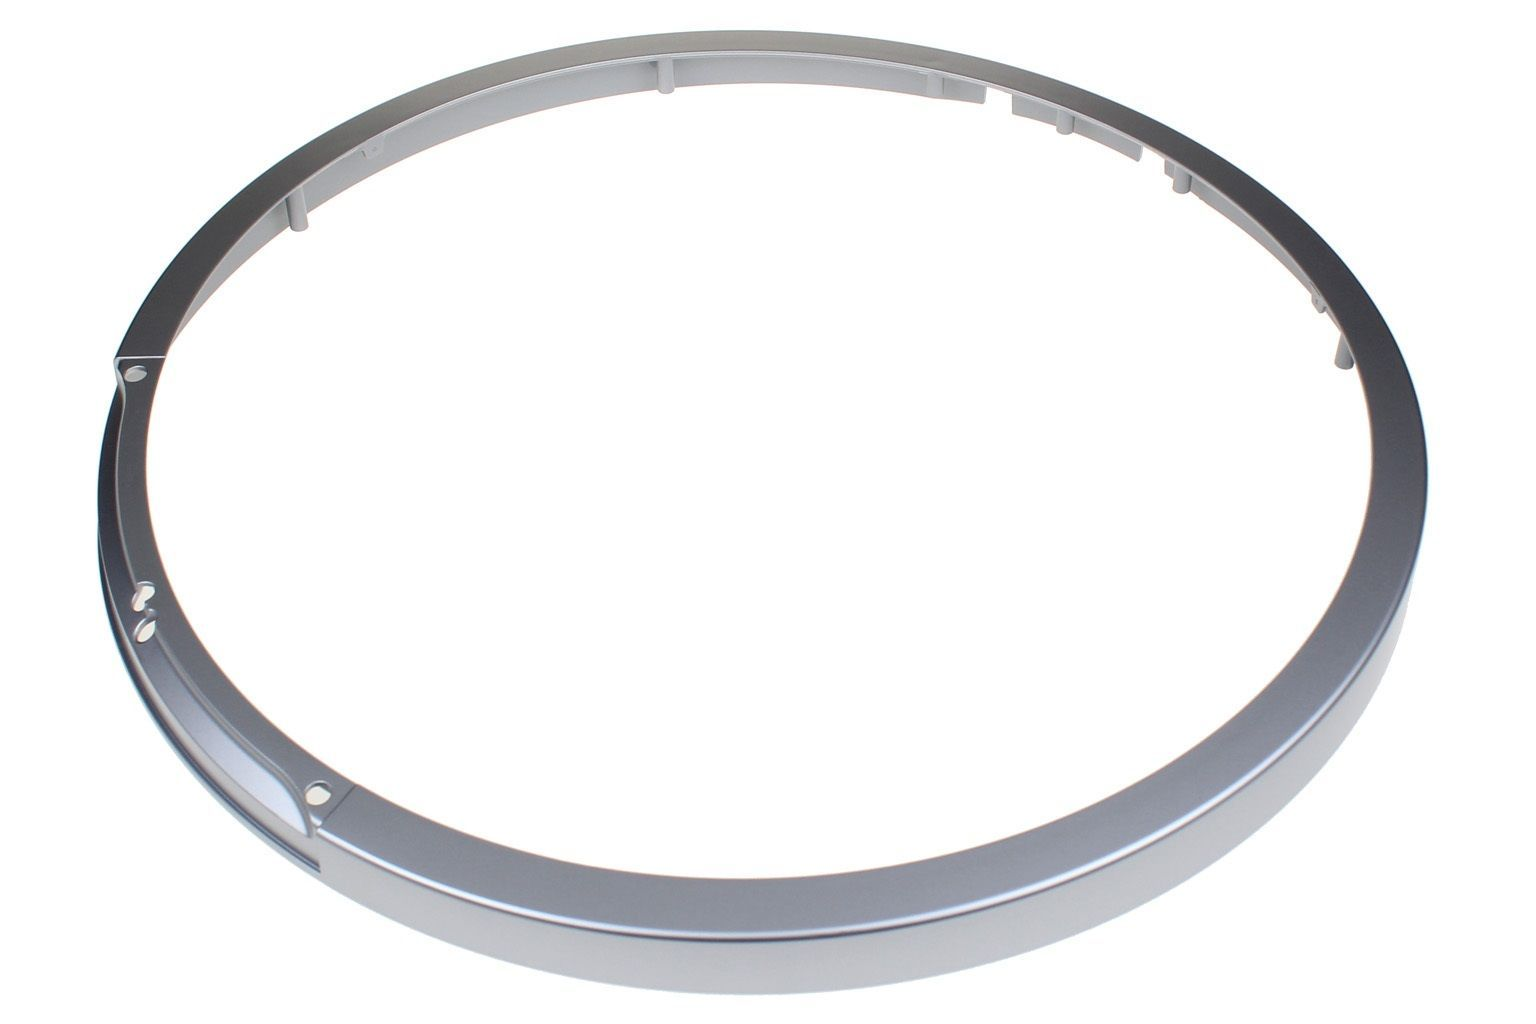 Front Frame Door Ring for Bosch Siemens Tumble Dryers BSH